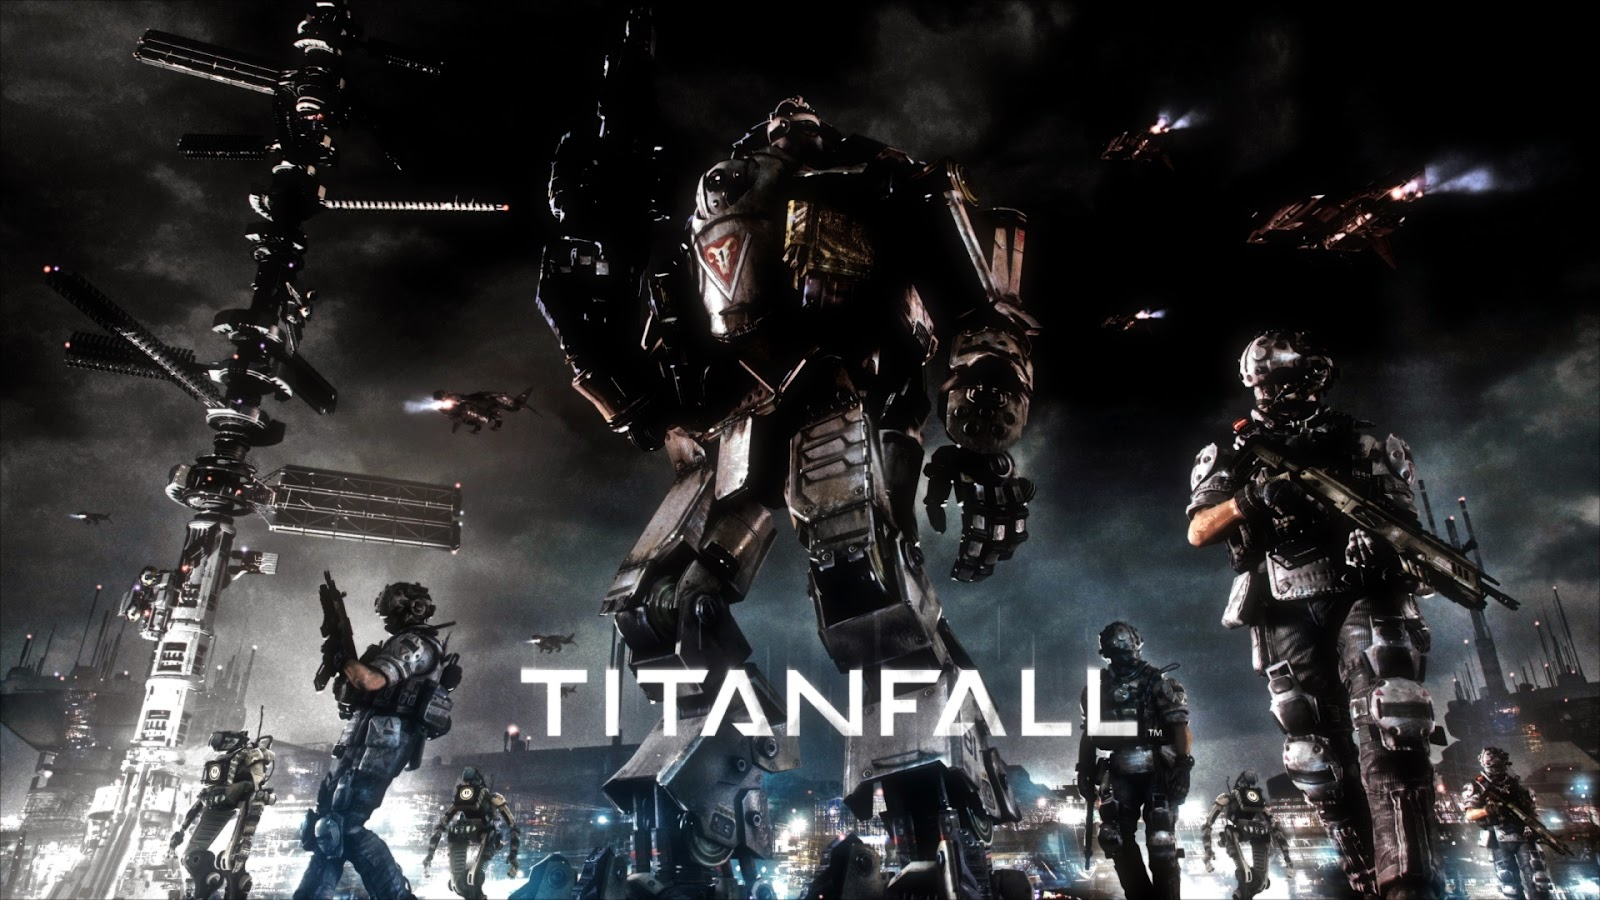 Titanfall Games ScreenShot Wallpaper HD Wallpaper with 1600x900 1107